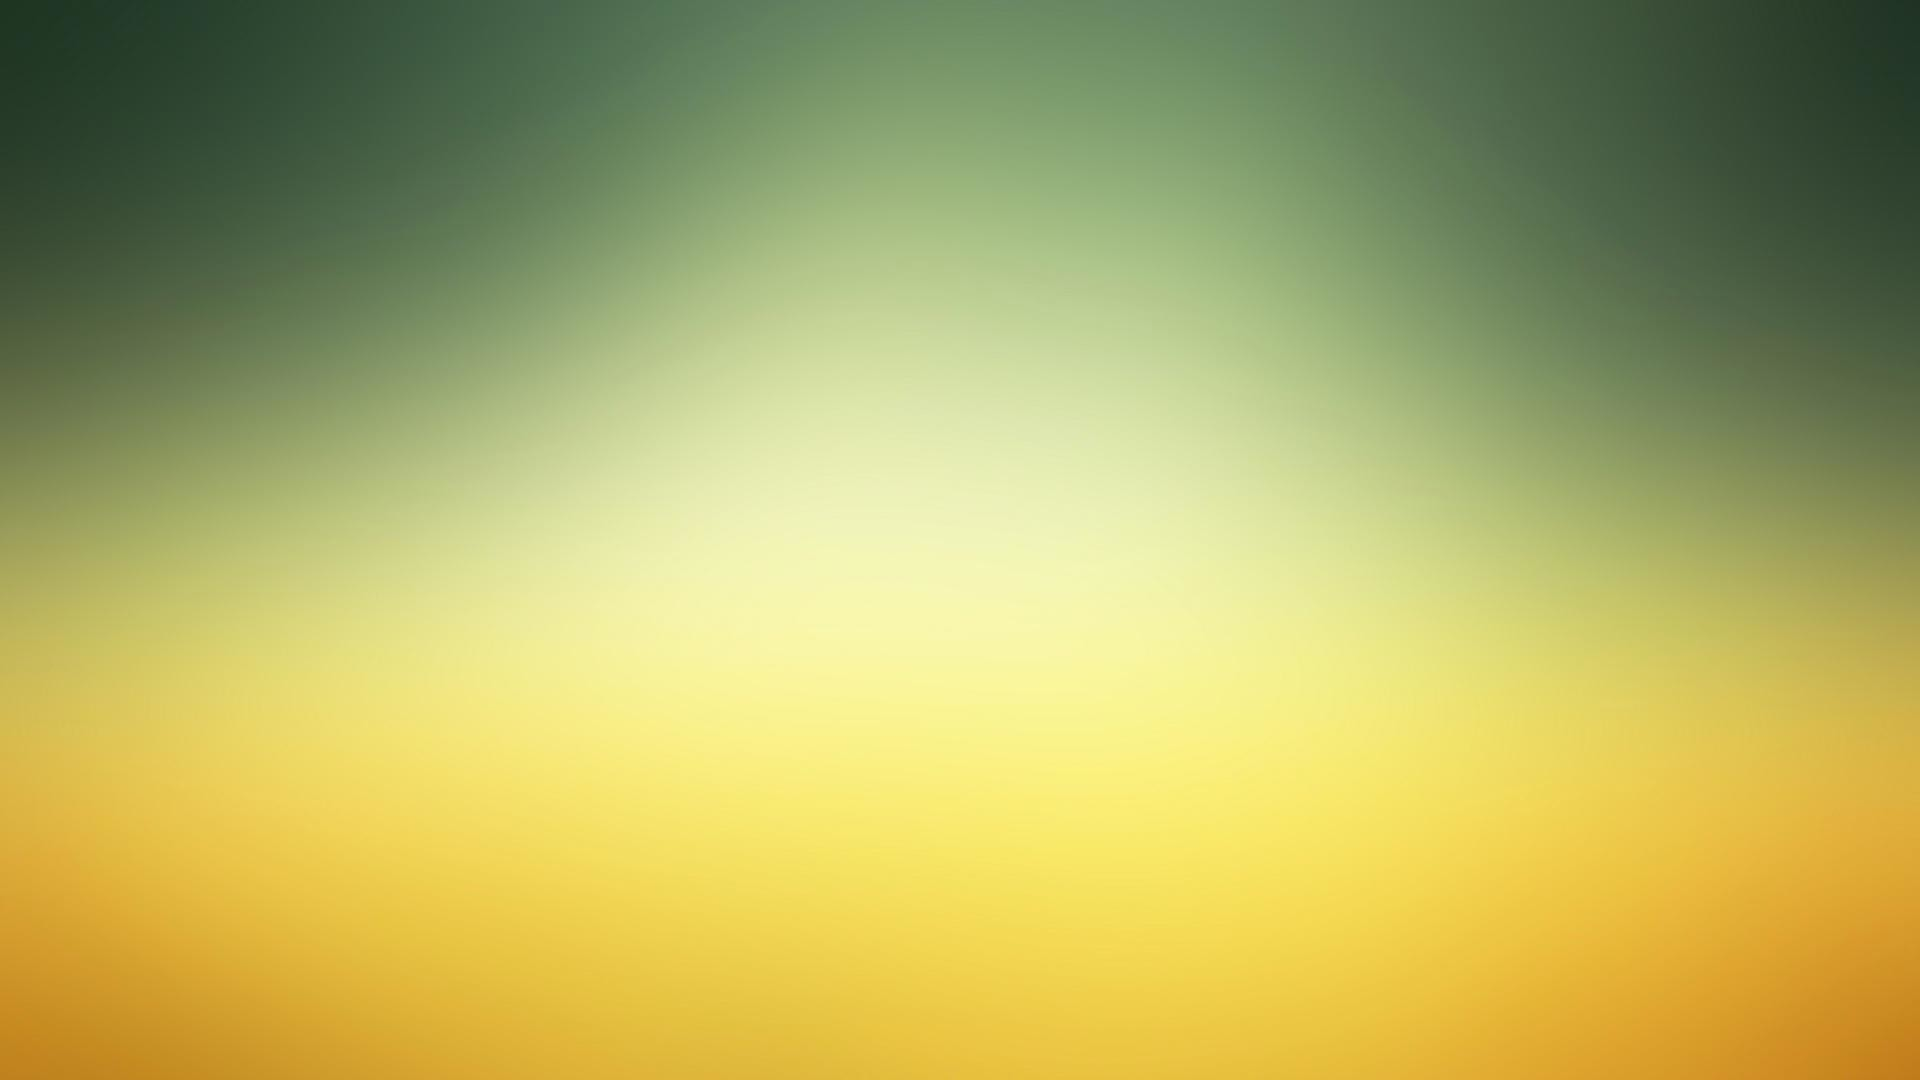 1920x1080 Gradient-Wallpaper-Free